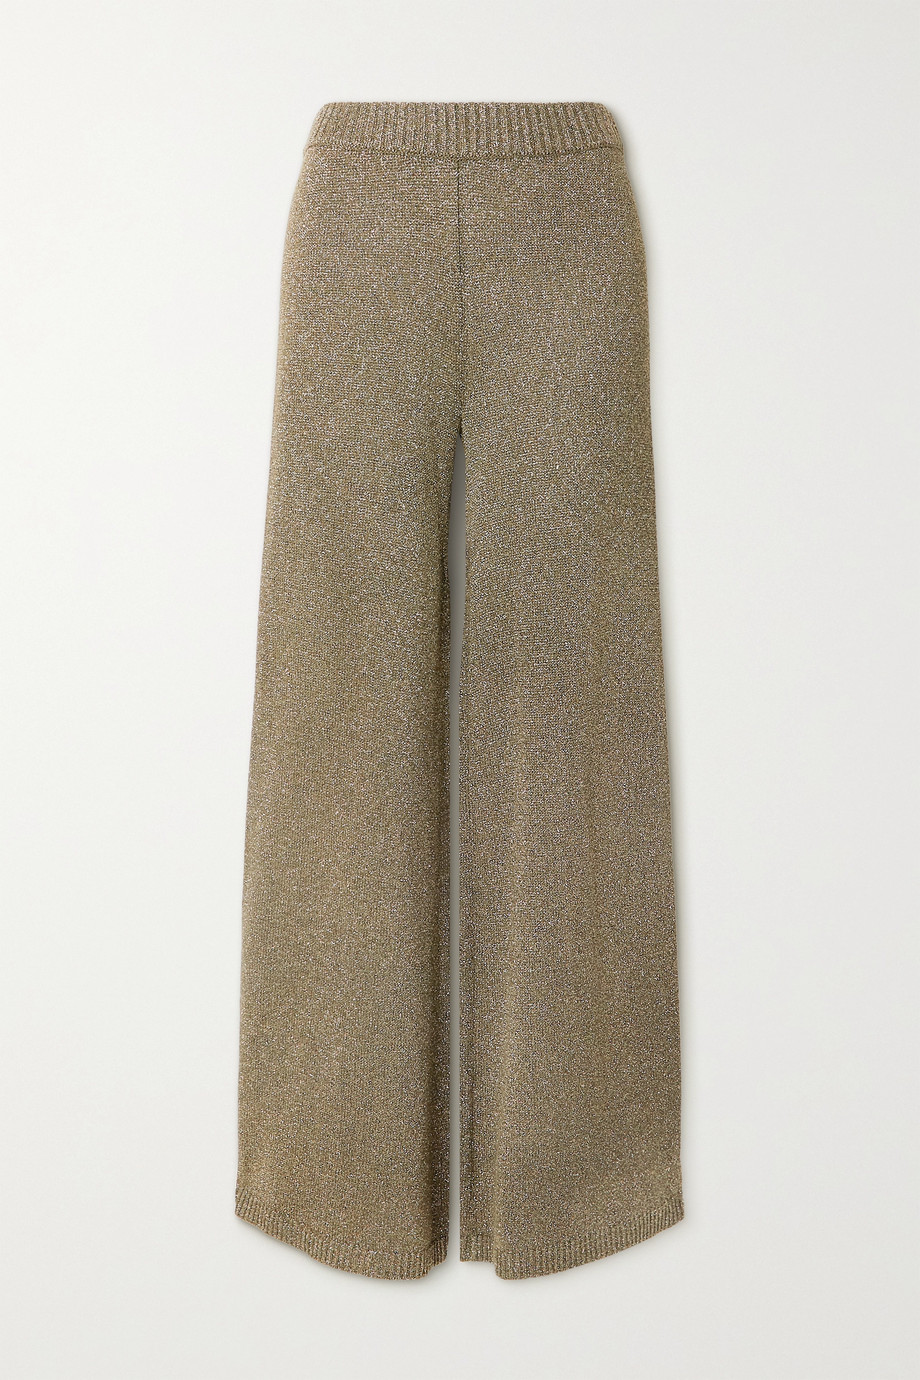 STAUD Daisy metallic stretch-knit wide-leg pants